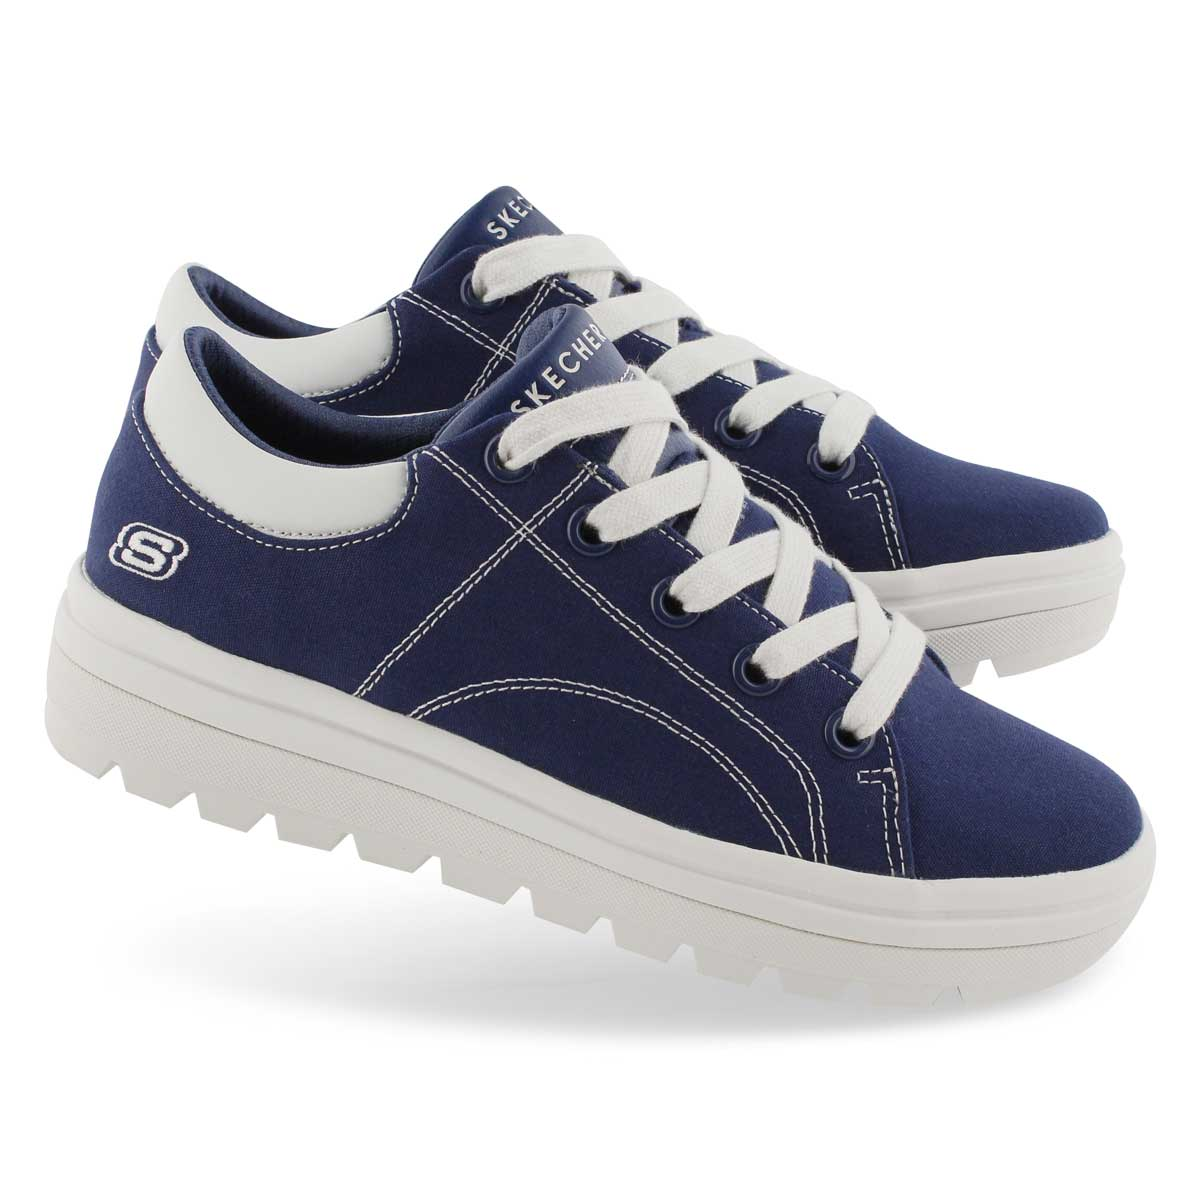 Lds Street Cleats 2 nvy fashion snkr